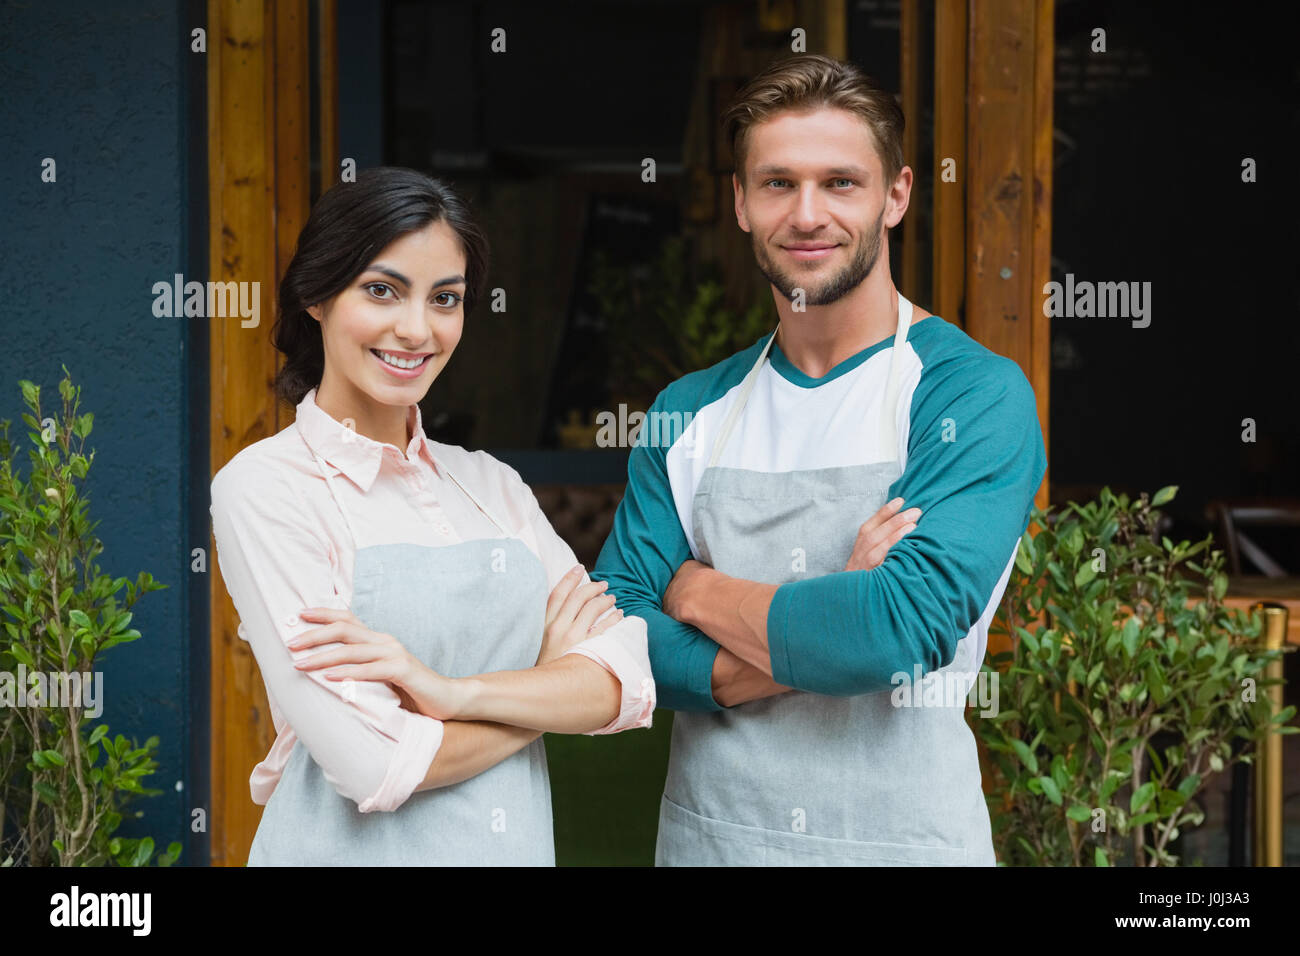 Portrait of smiling waiter and waitress standing with arms crossed outside the cafe - Stock Image